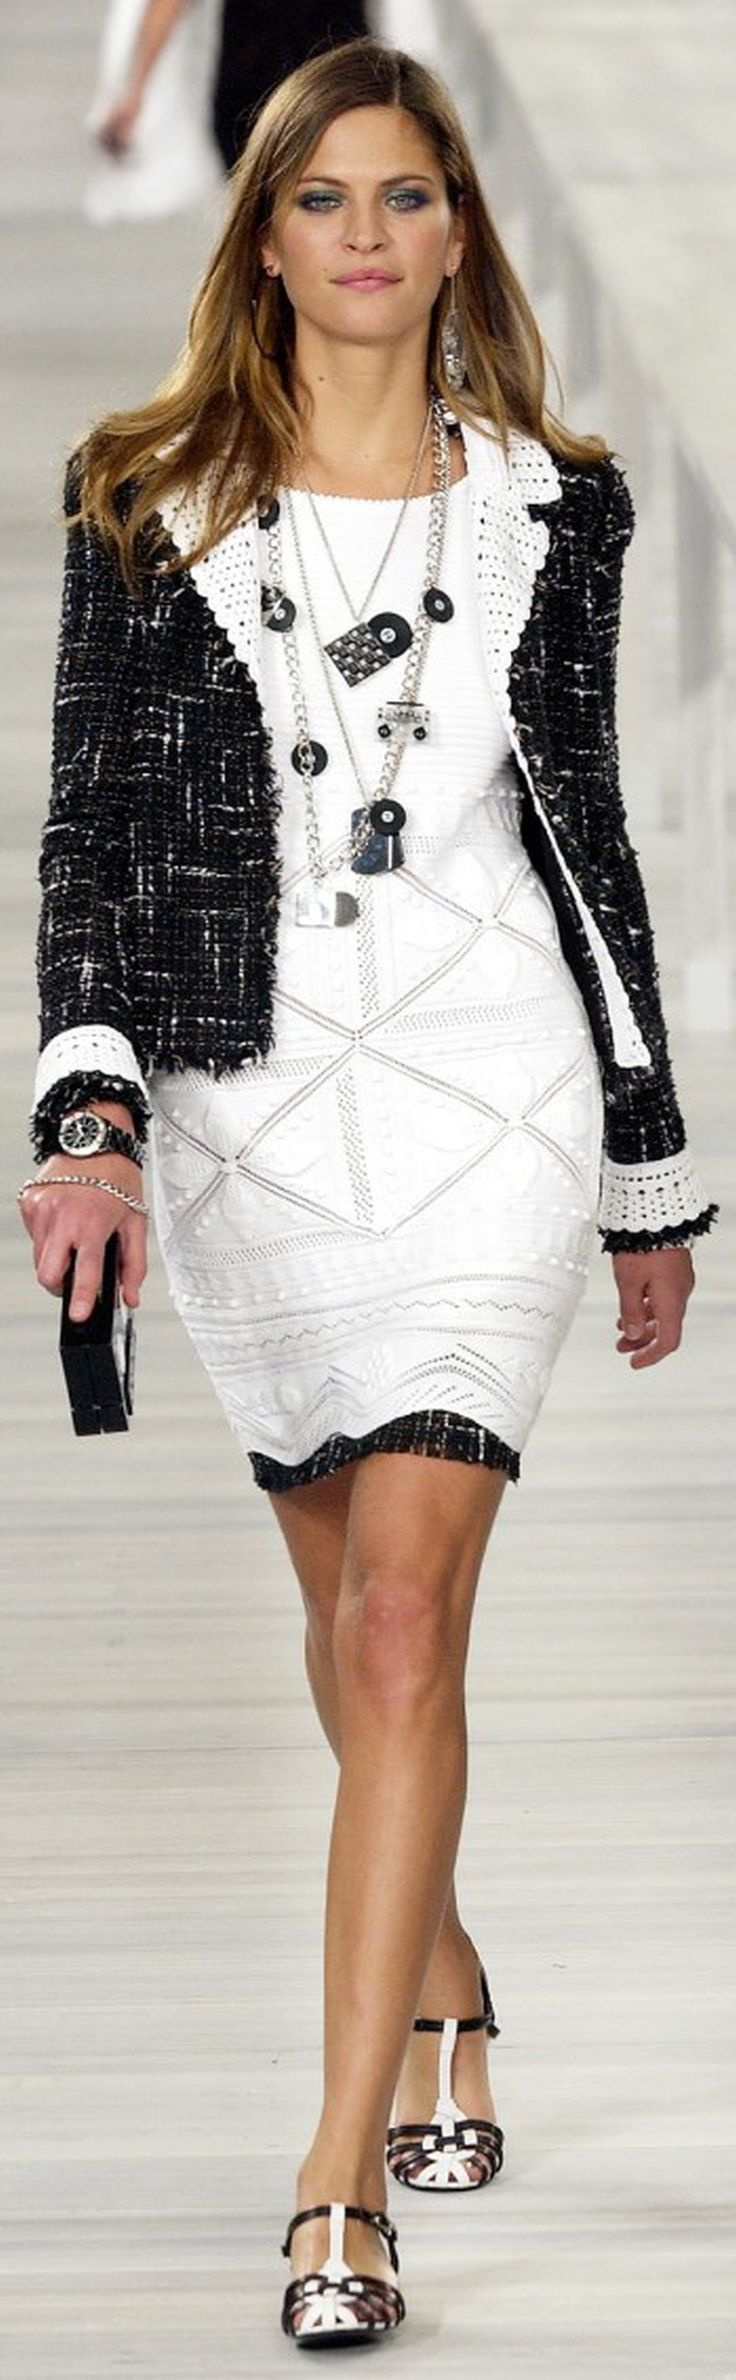 Chanel Resort 2014 <3